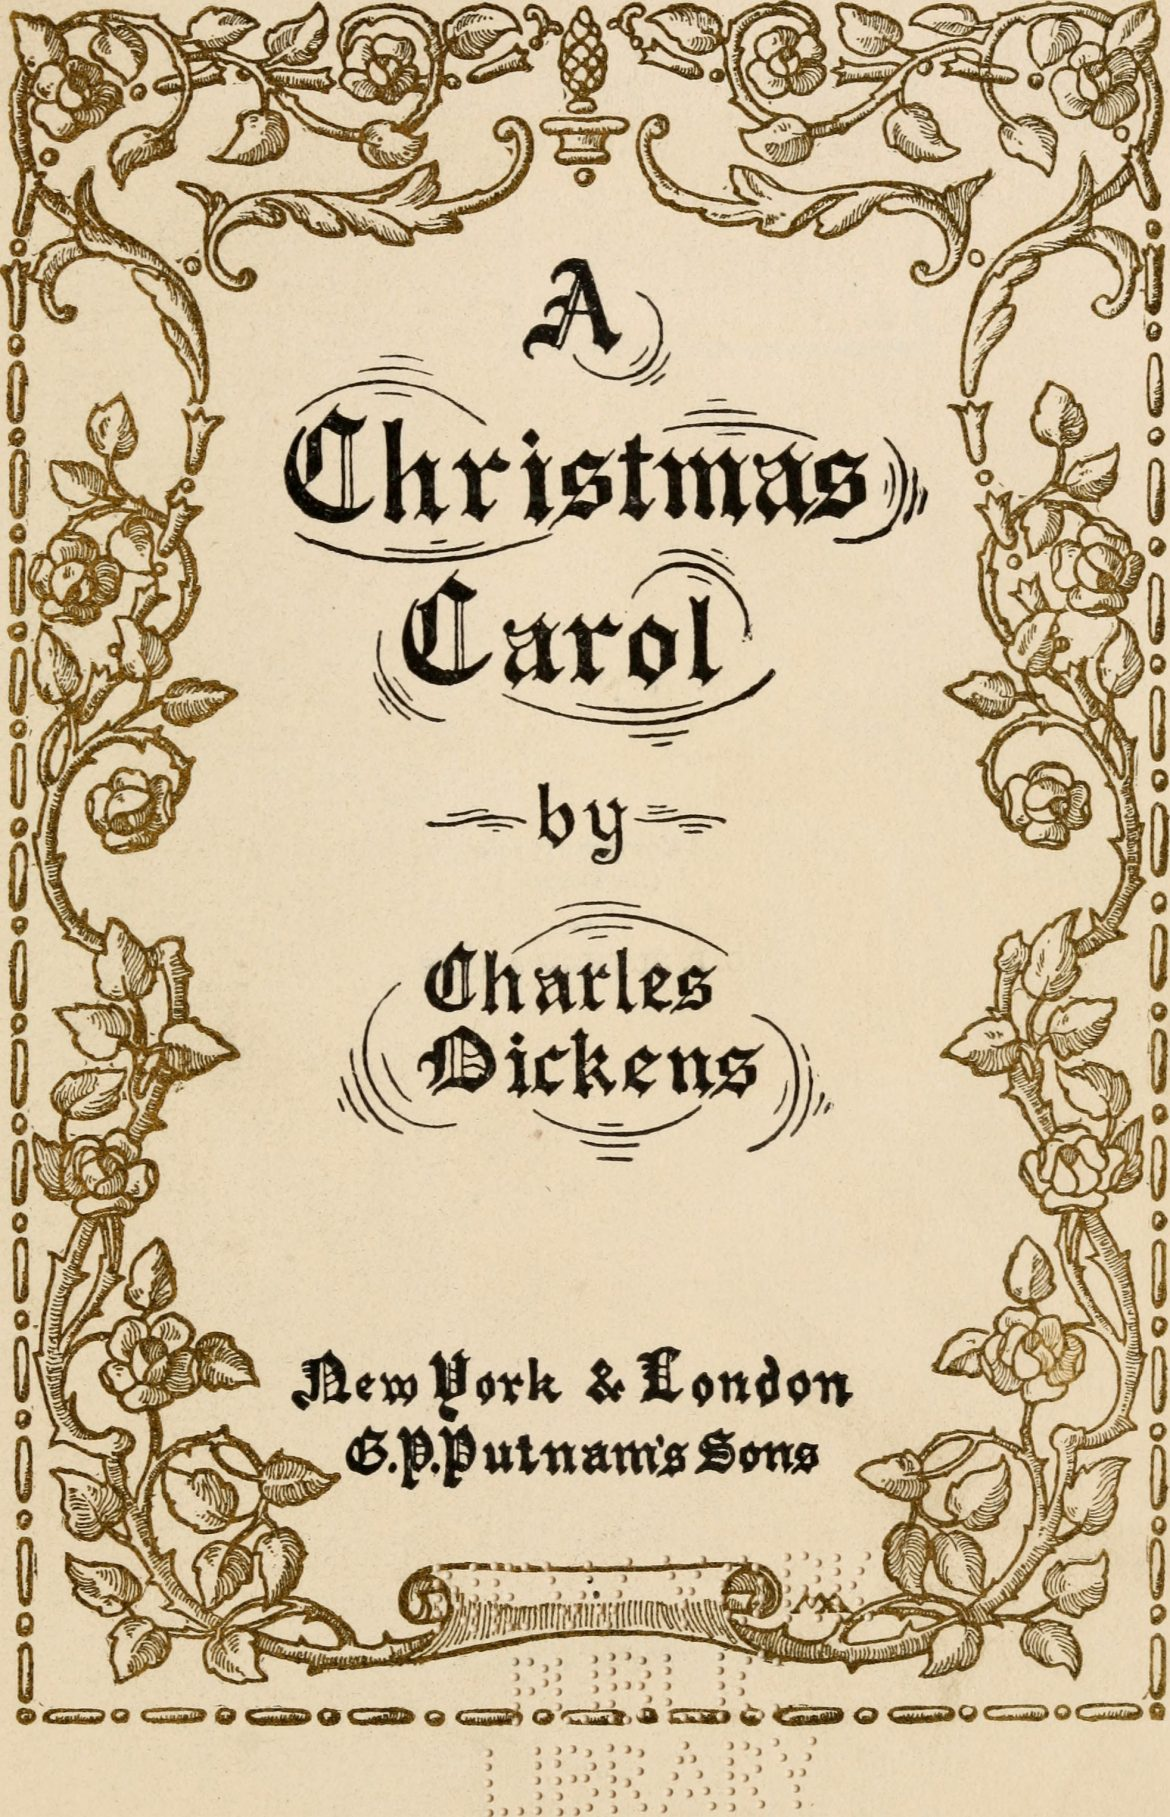 charles dickenss a christmas carol was an enormous success as soon as it was published in 1843 and has never been out of print new canaan library offers - When Was A Christmas Carol Published